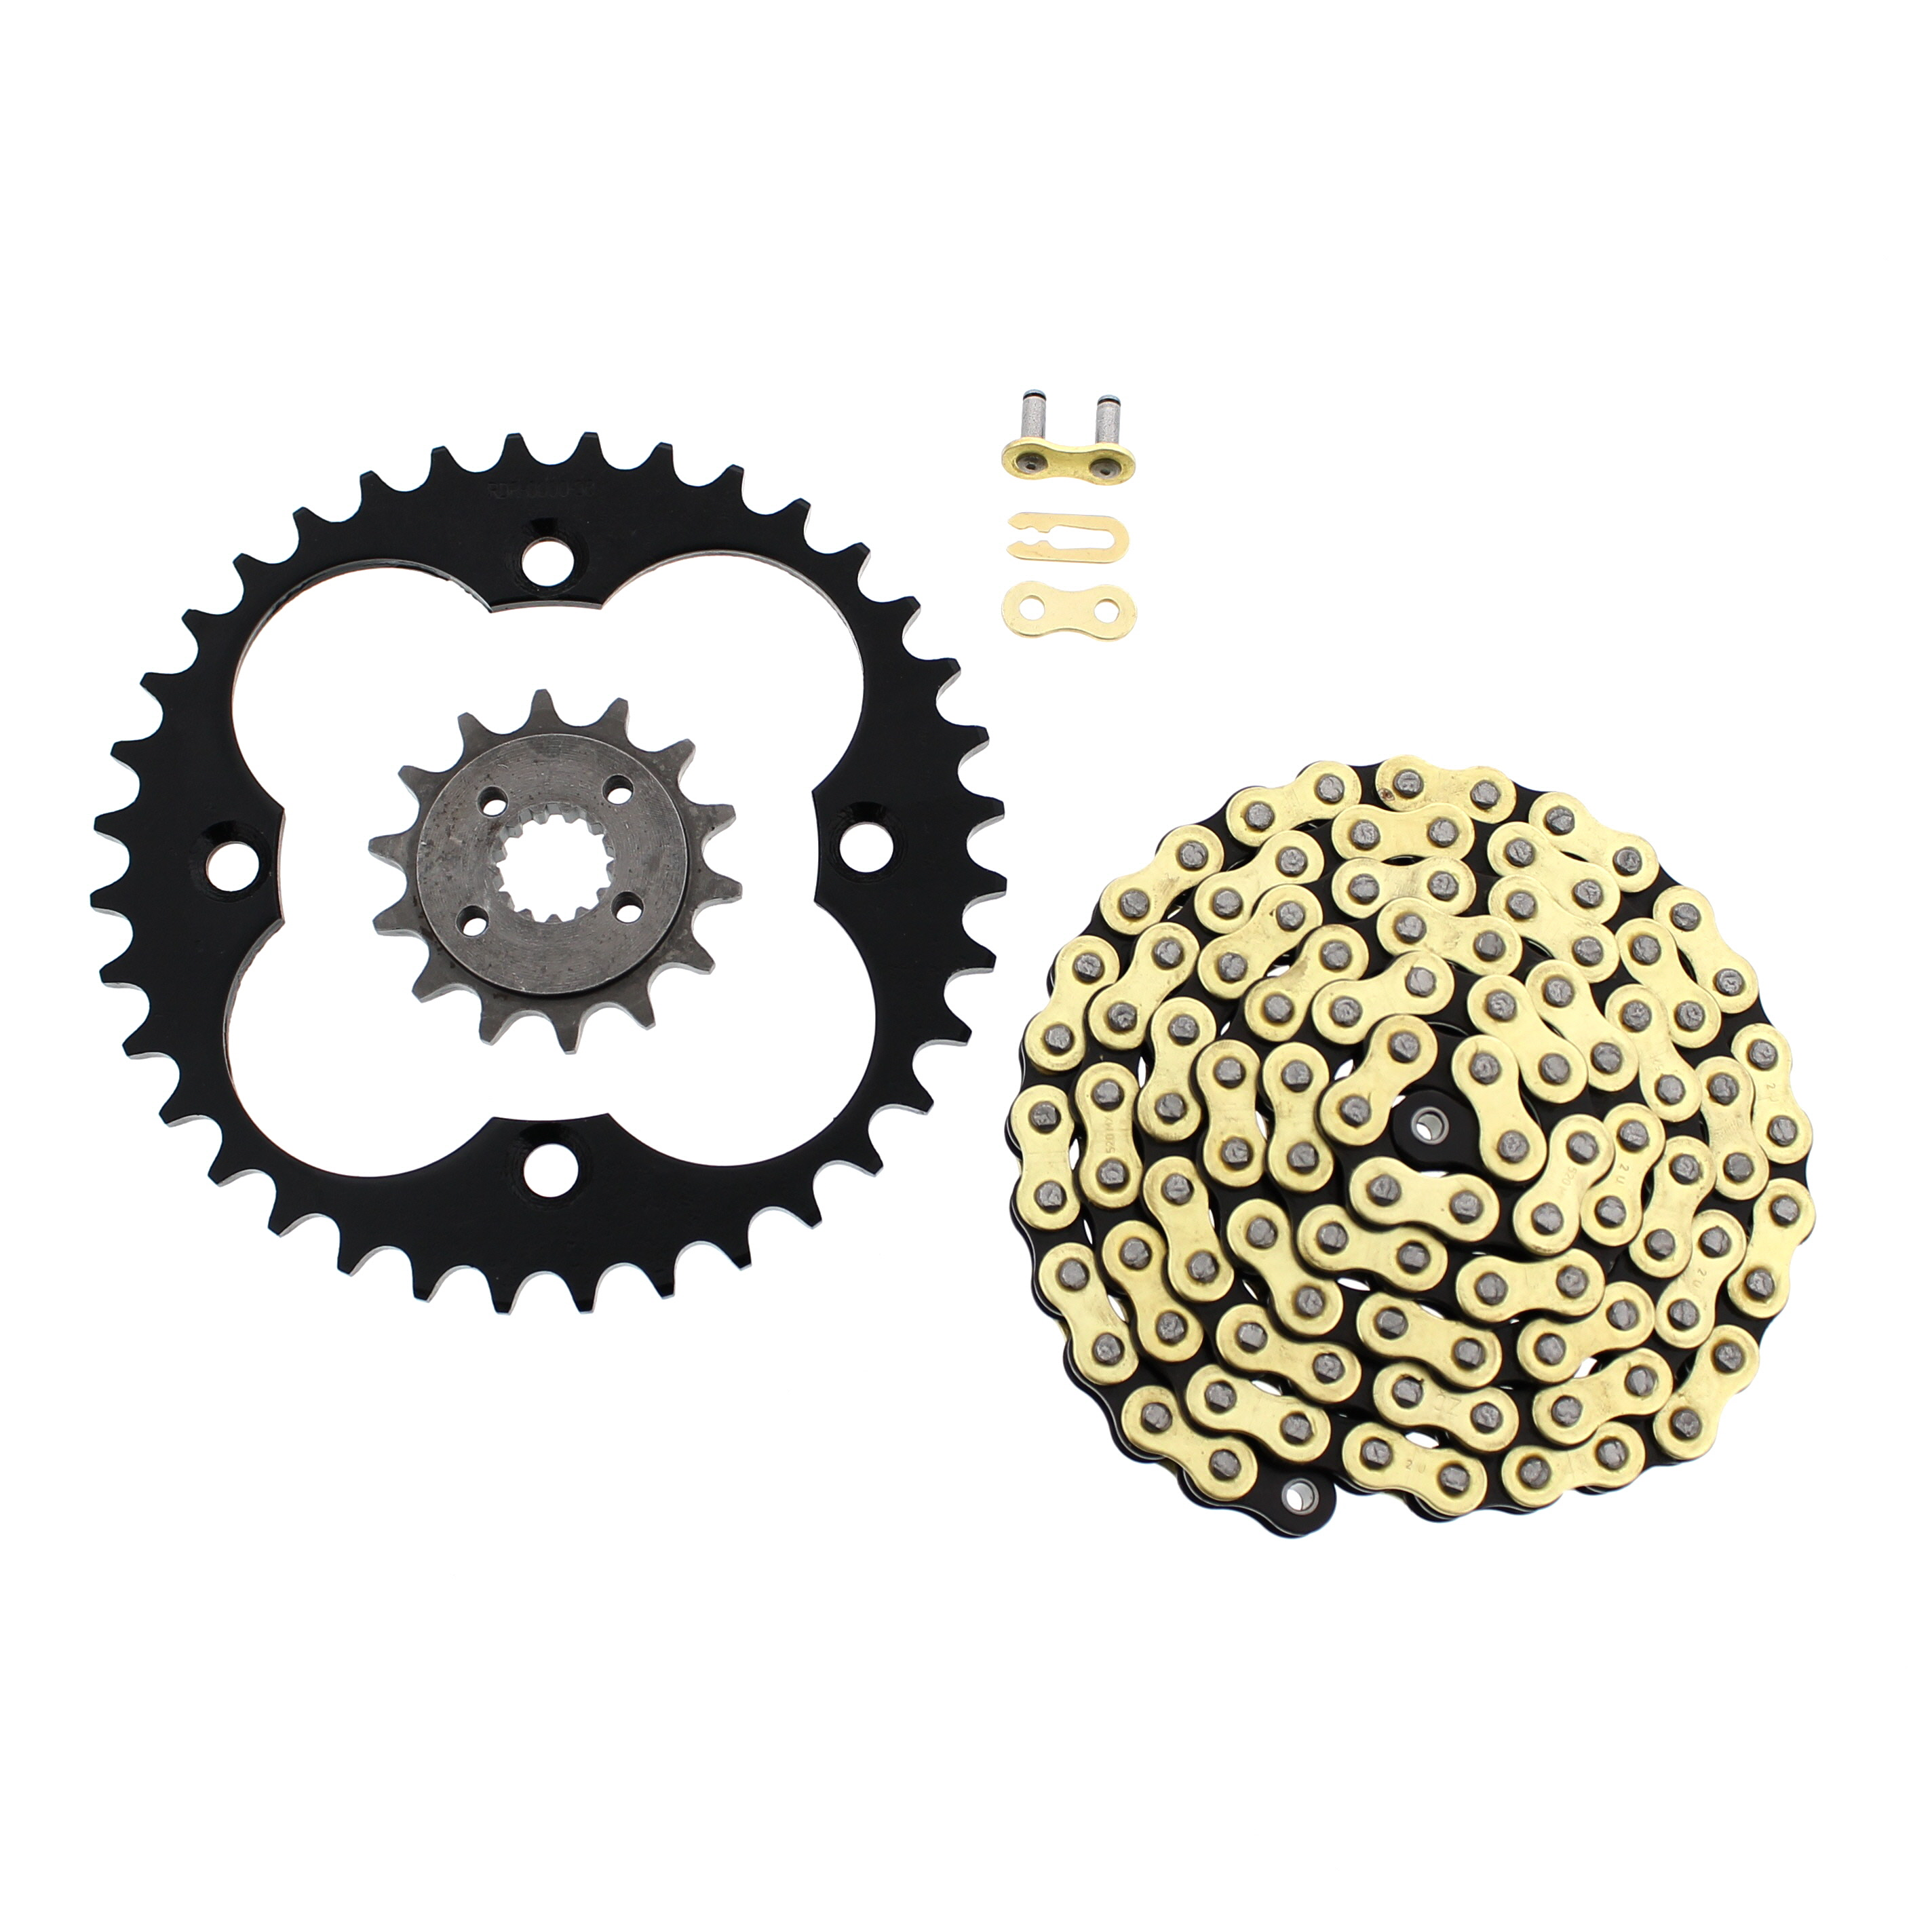 2012 Honda TRX400X Gold MX Series CZ Chain Black Sprocket 14/36 +10 Swingarm